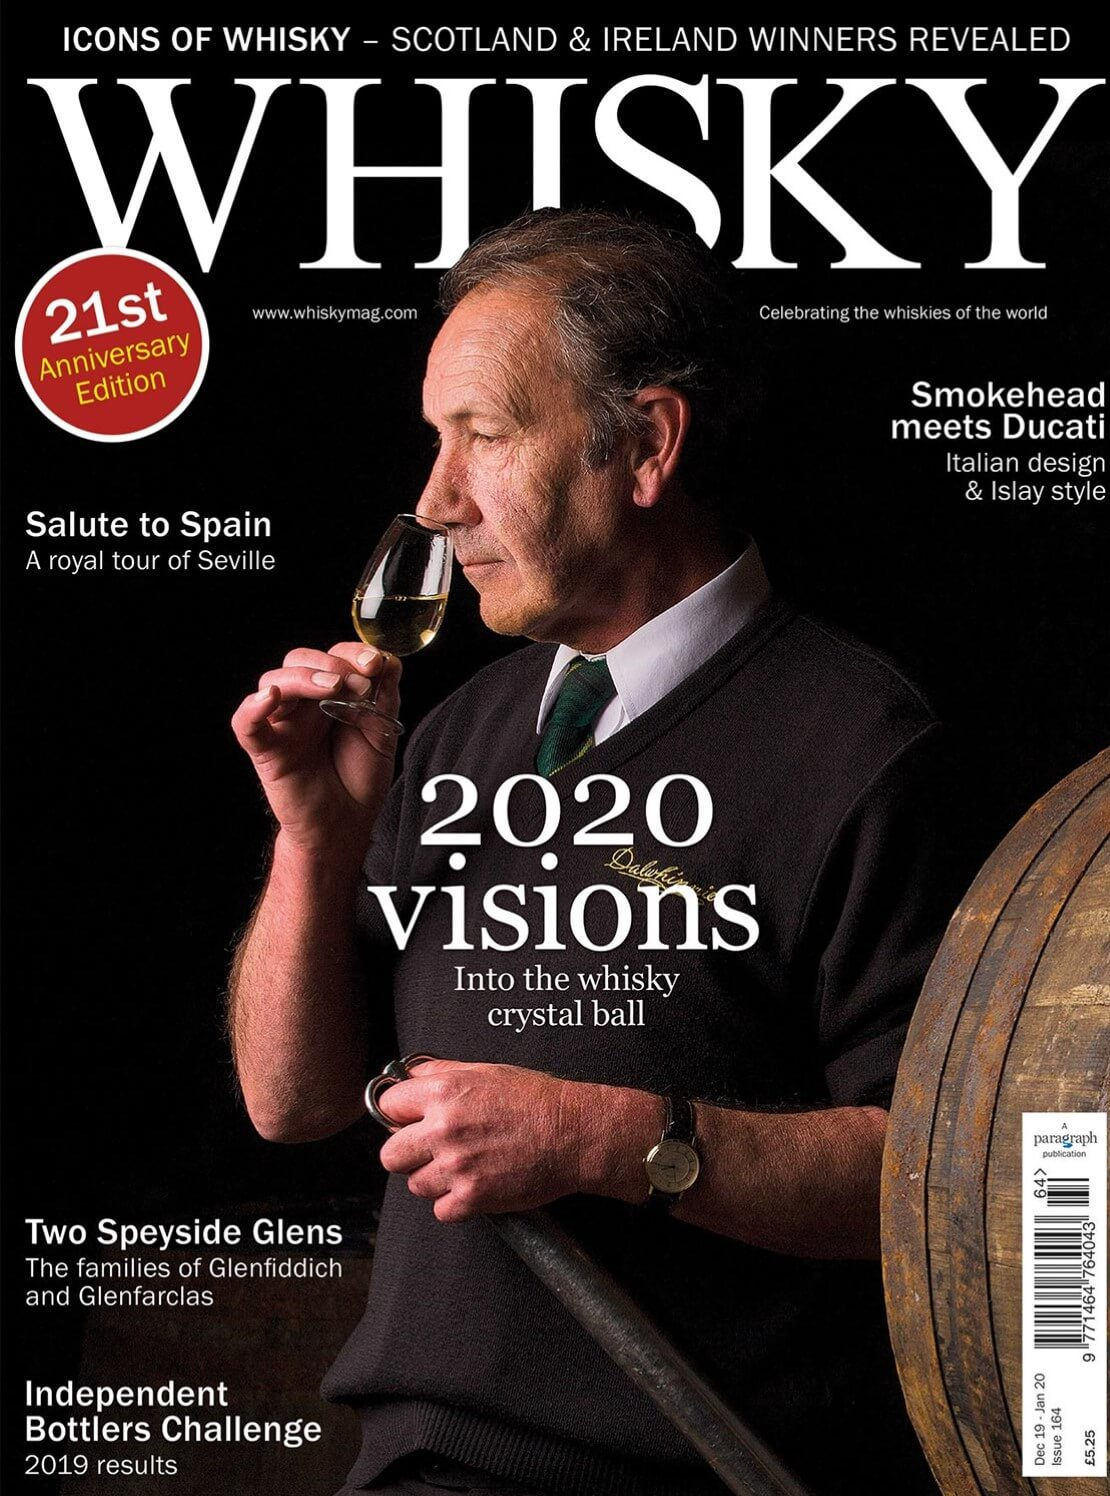 2020 visions, Smokehead x Ducati, The tale of two Glens, Distilling history